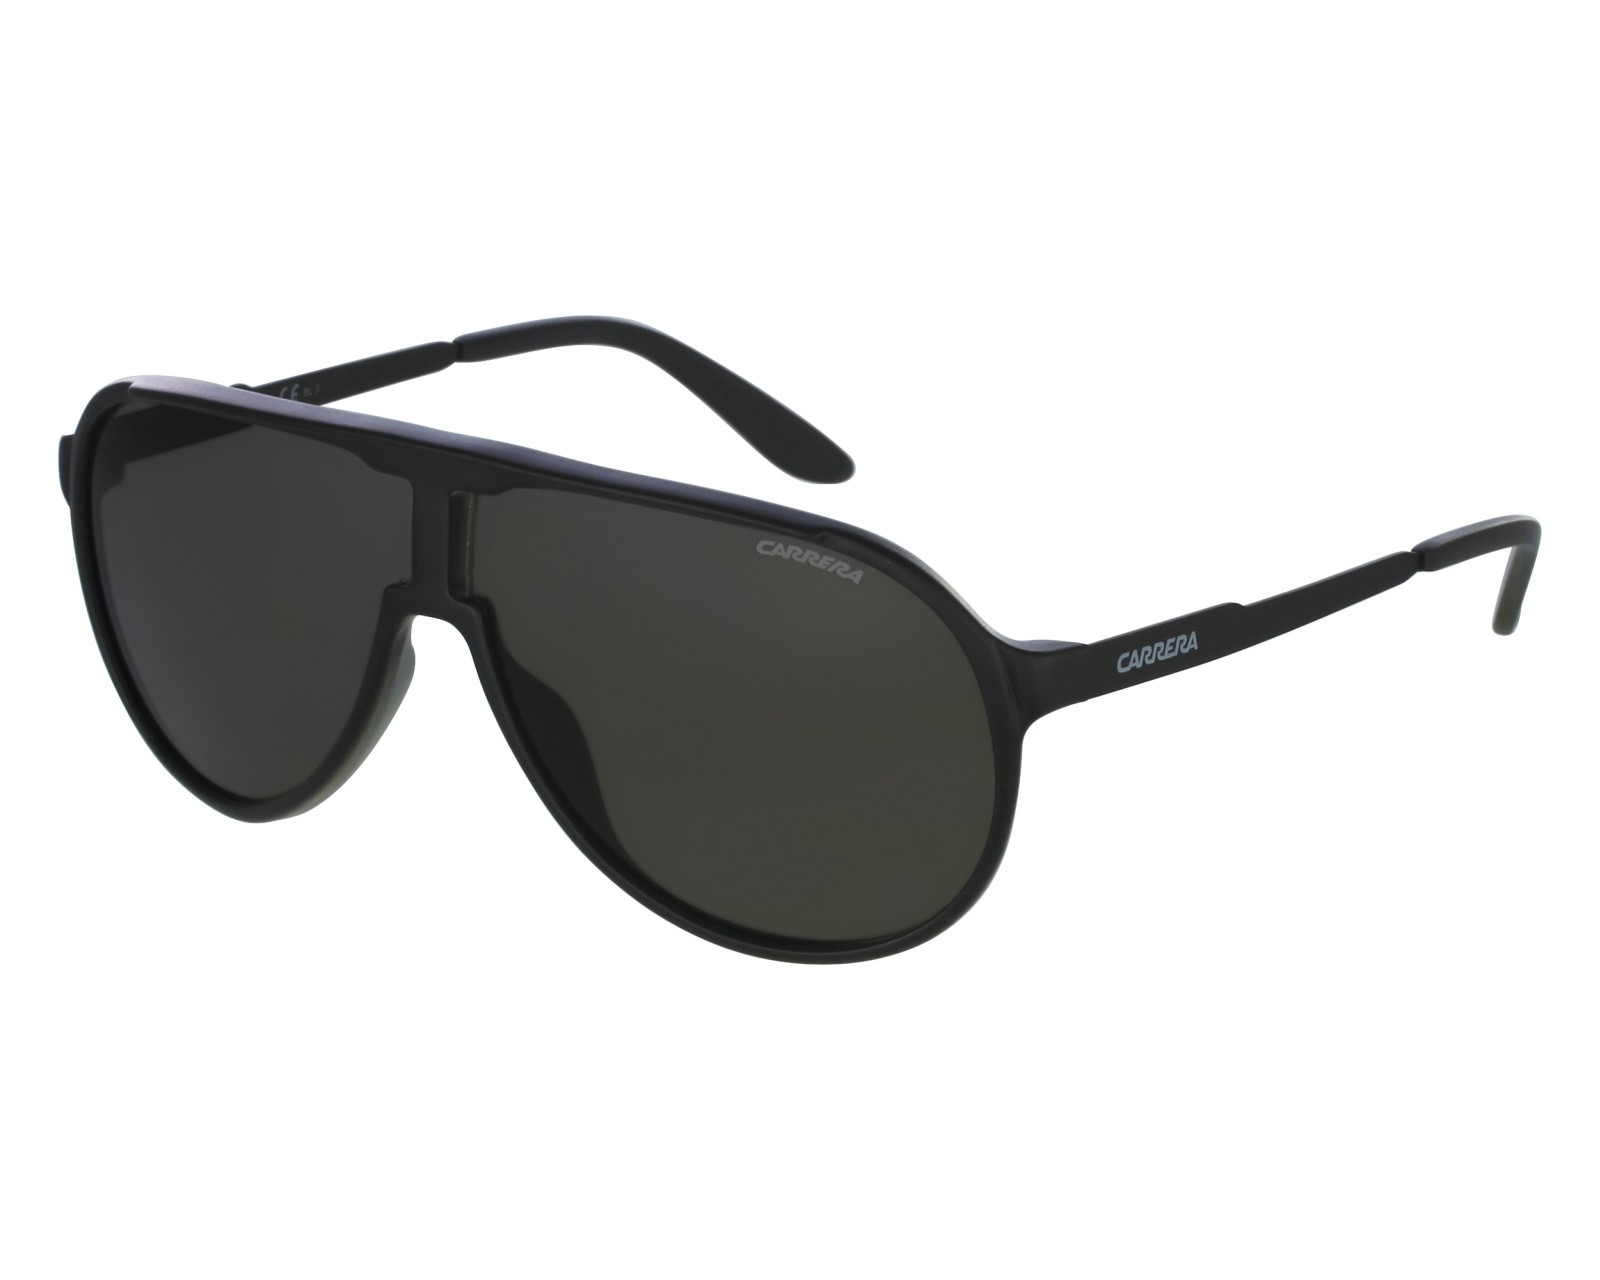 b64a66bf68a Sunglasses Carrera New-Champion GUY NR 62-8 Black front view